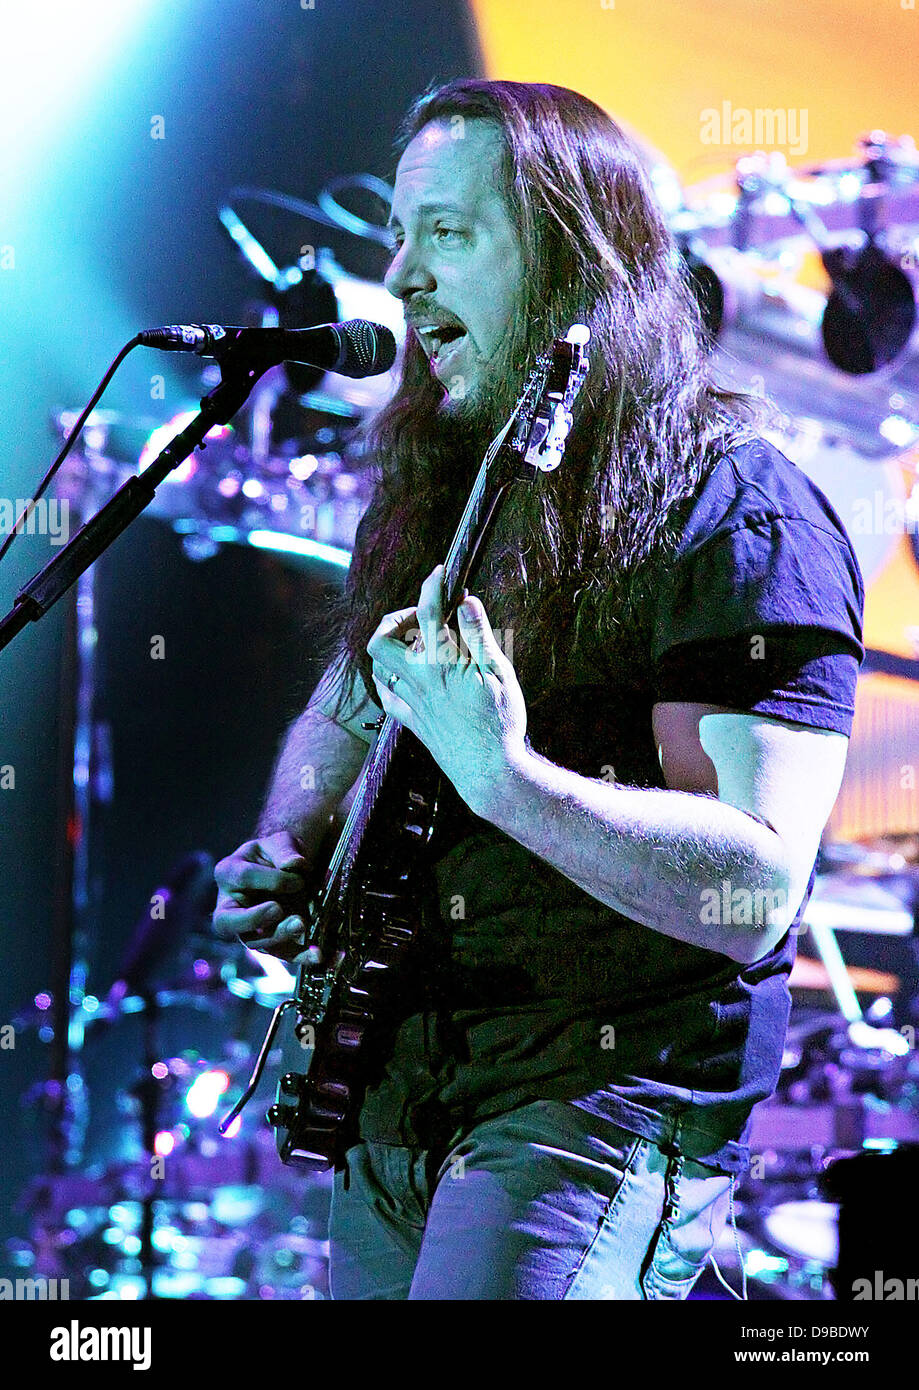 John Petrucci of Dream Theater performing at Manchester O2 Apollo. Manchester, England - 09.02.12 - Stock Image